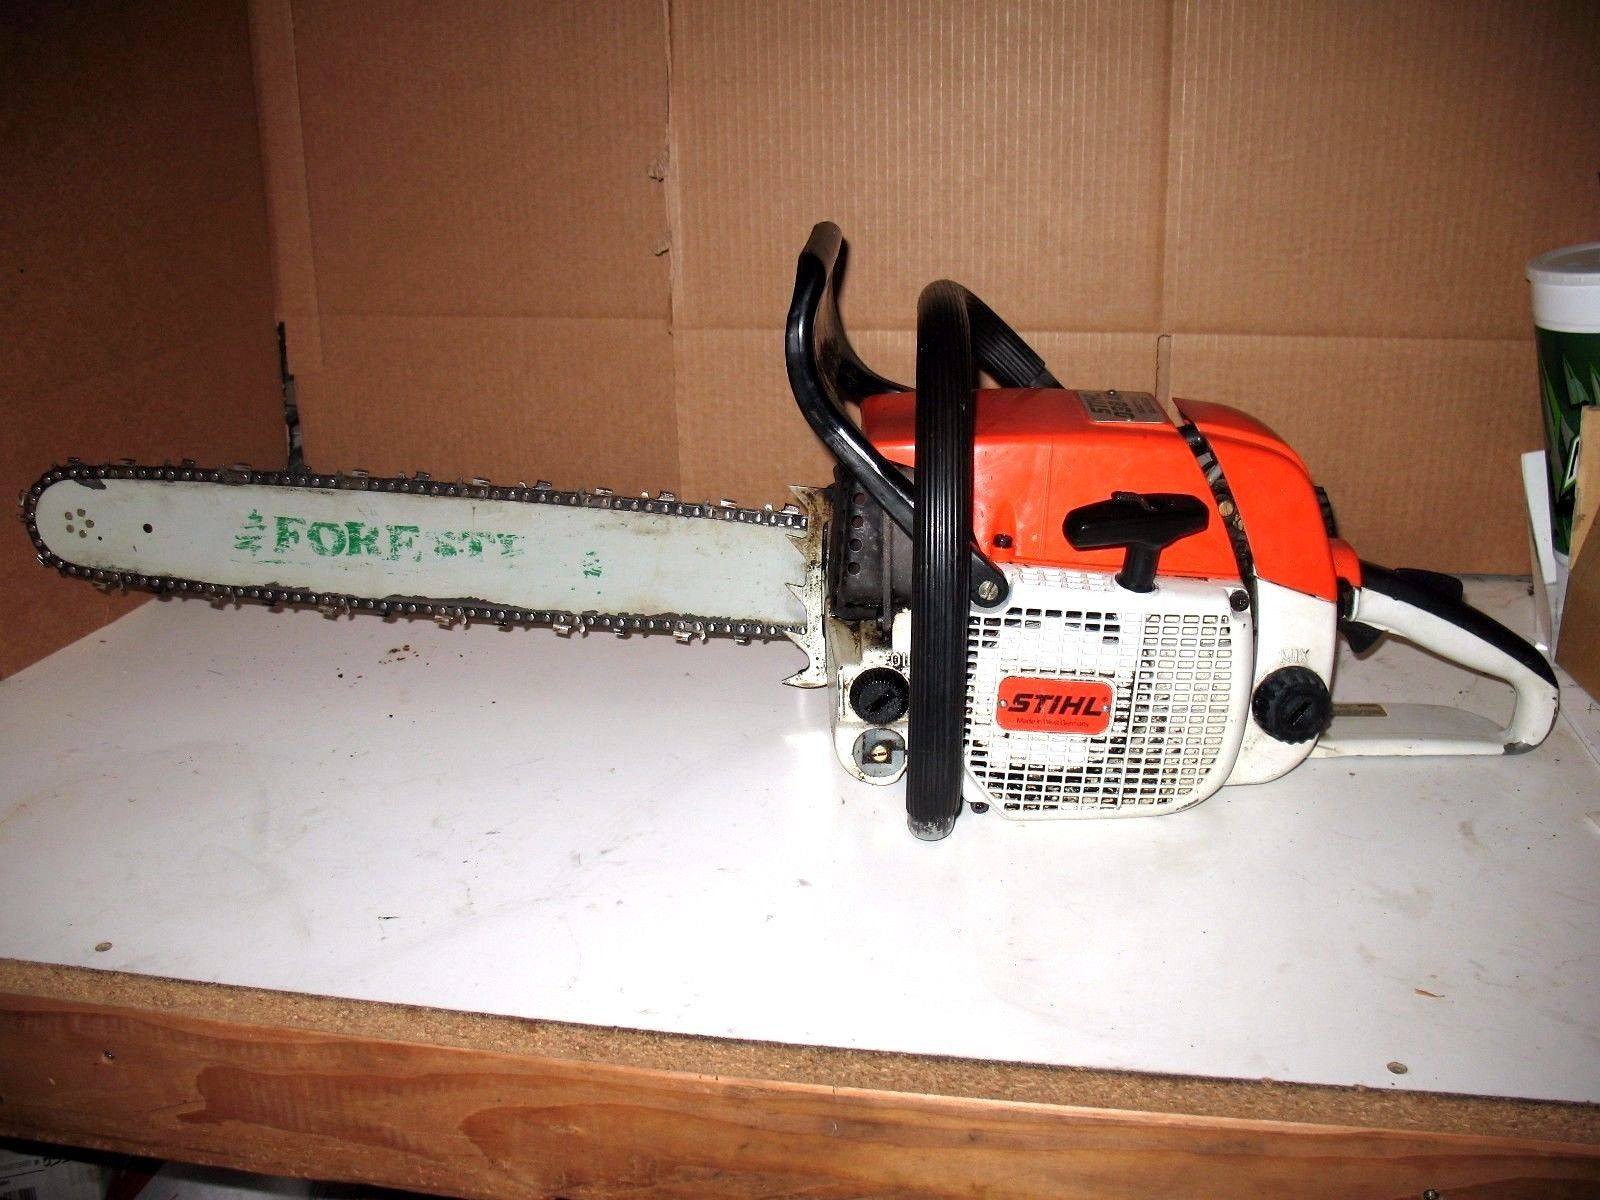 """Stihl 038 AV Chainsaw with 20"""" Inch Bar and Chain Very clean BARN FIND 1 Owner https://t.co/3yFH8DovJm https://t.co/sRs4cfqn3V"""